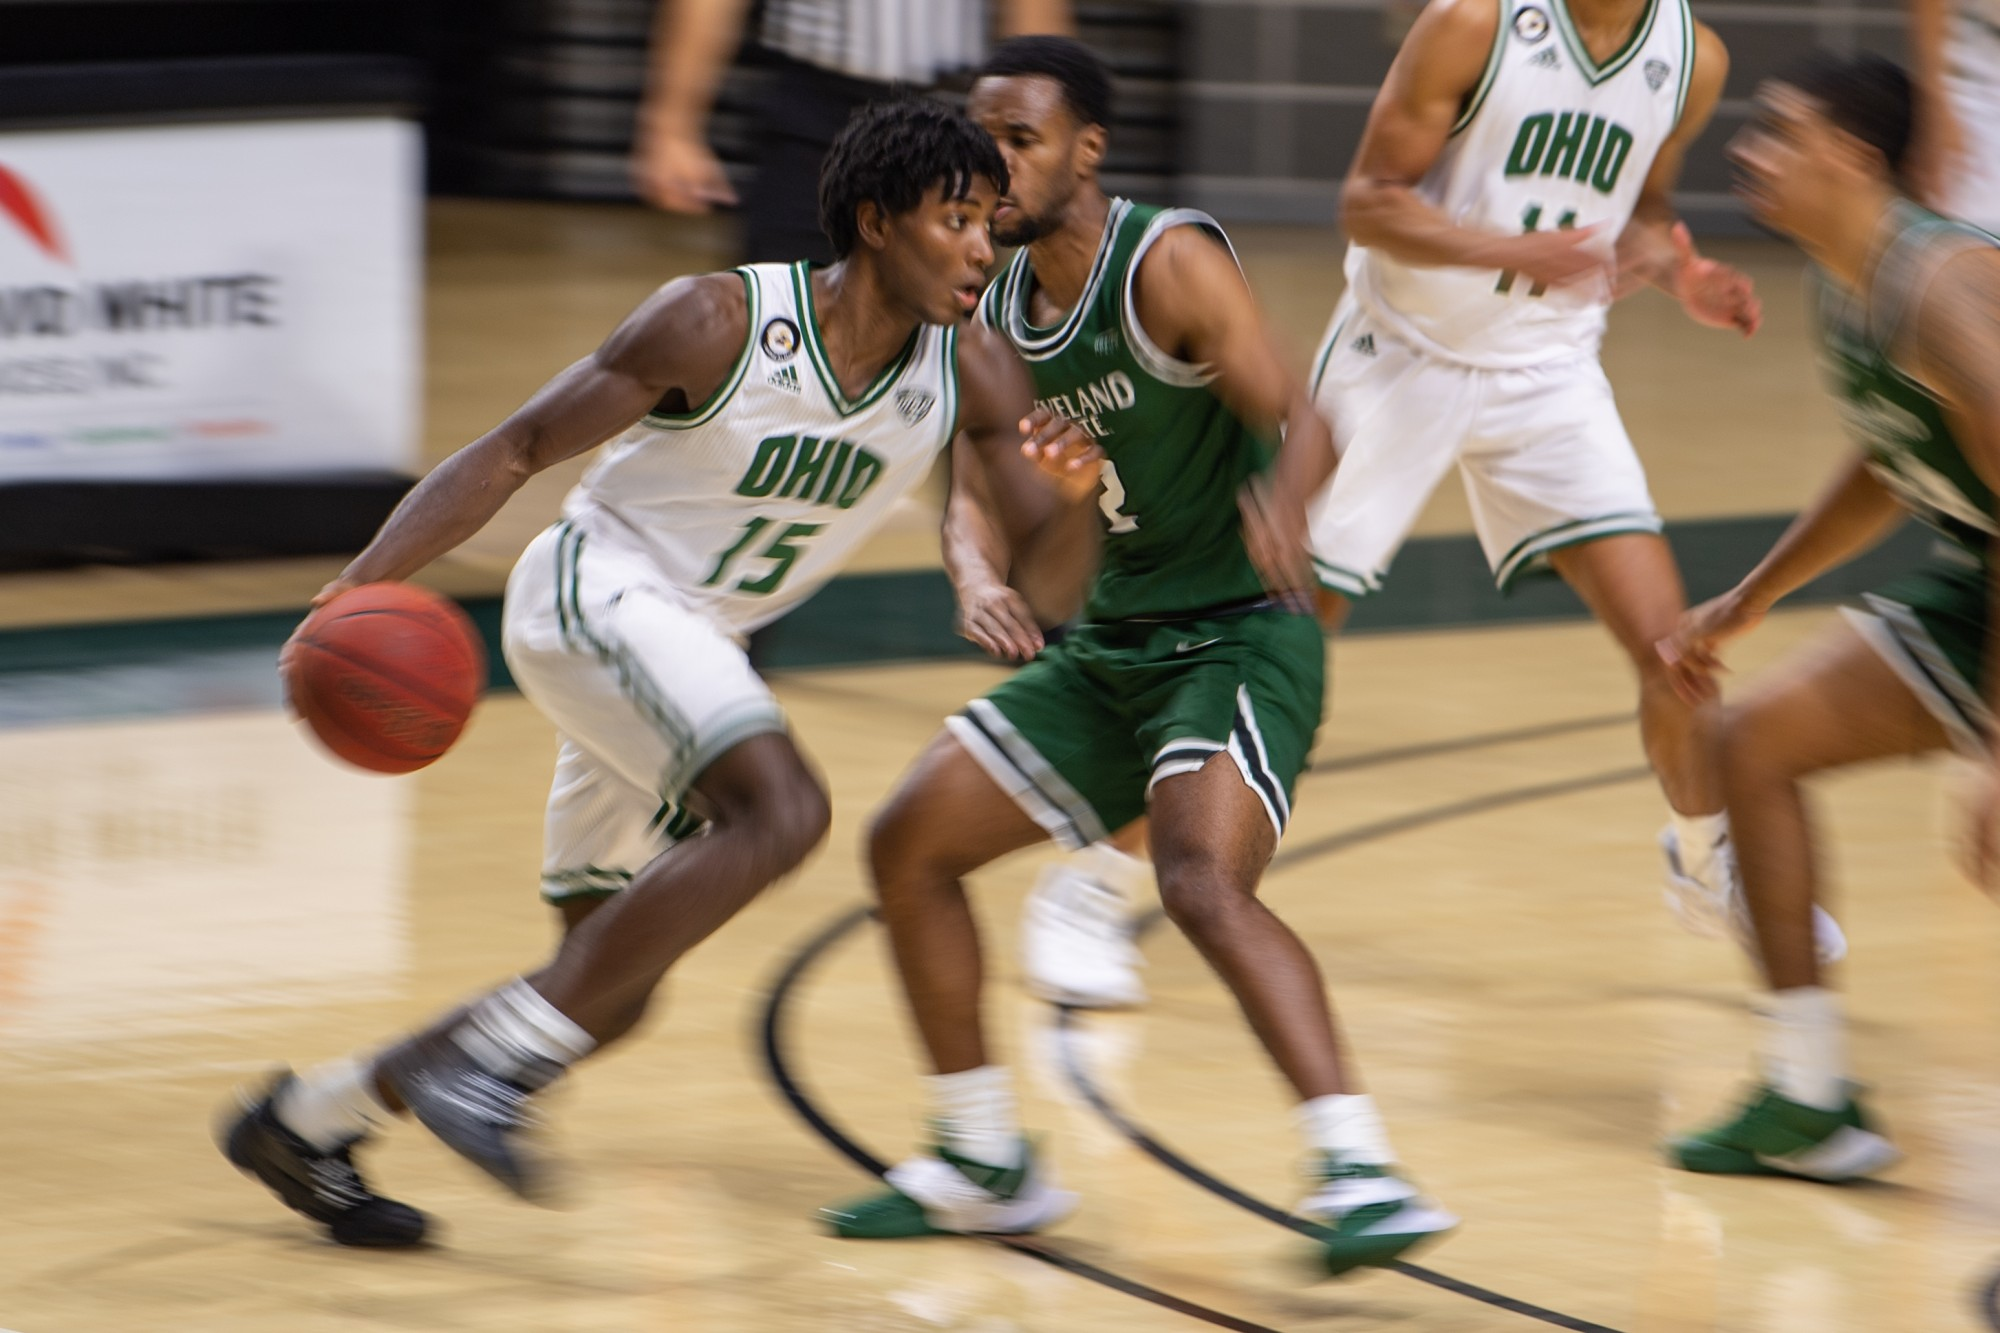 Ohio's Lunden McDay (#15) dribbles the ball during the Ohio versus Cleveland State match in The Convo on Sunday, Dec. 6, 2020. Ohio won 101-46. (FILE)